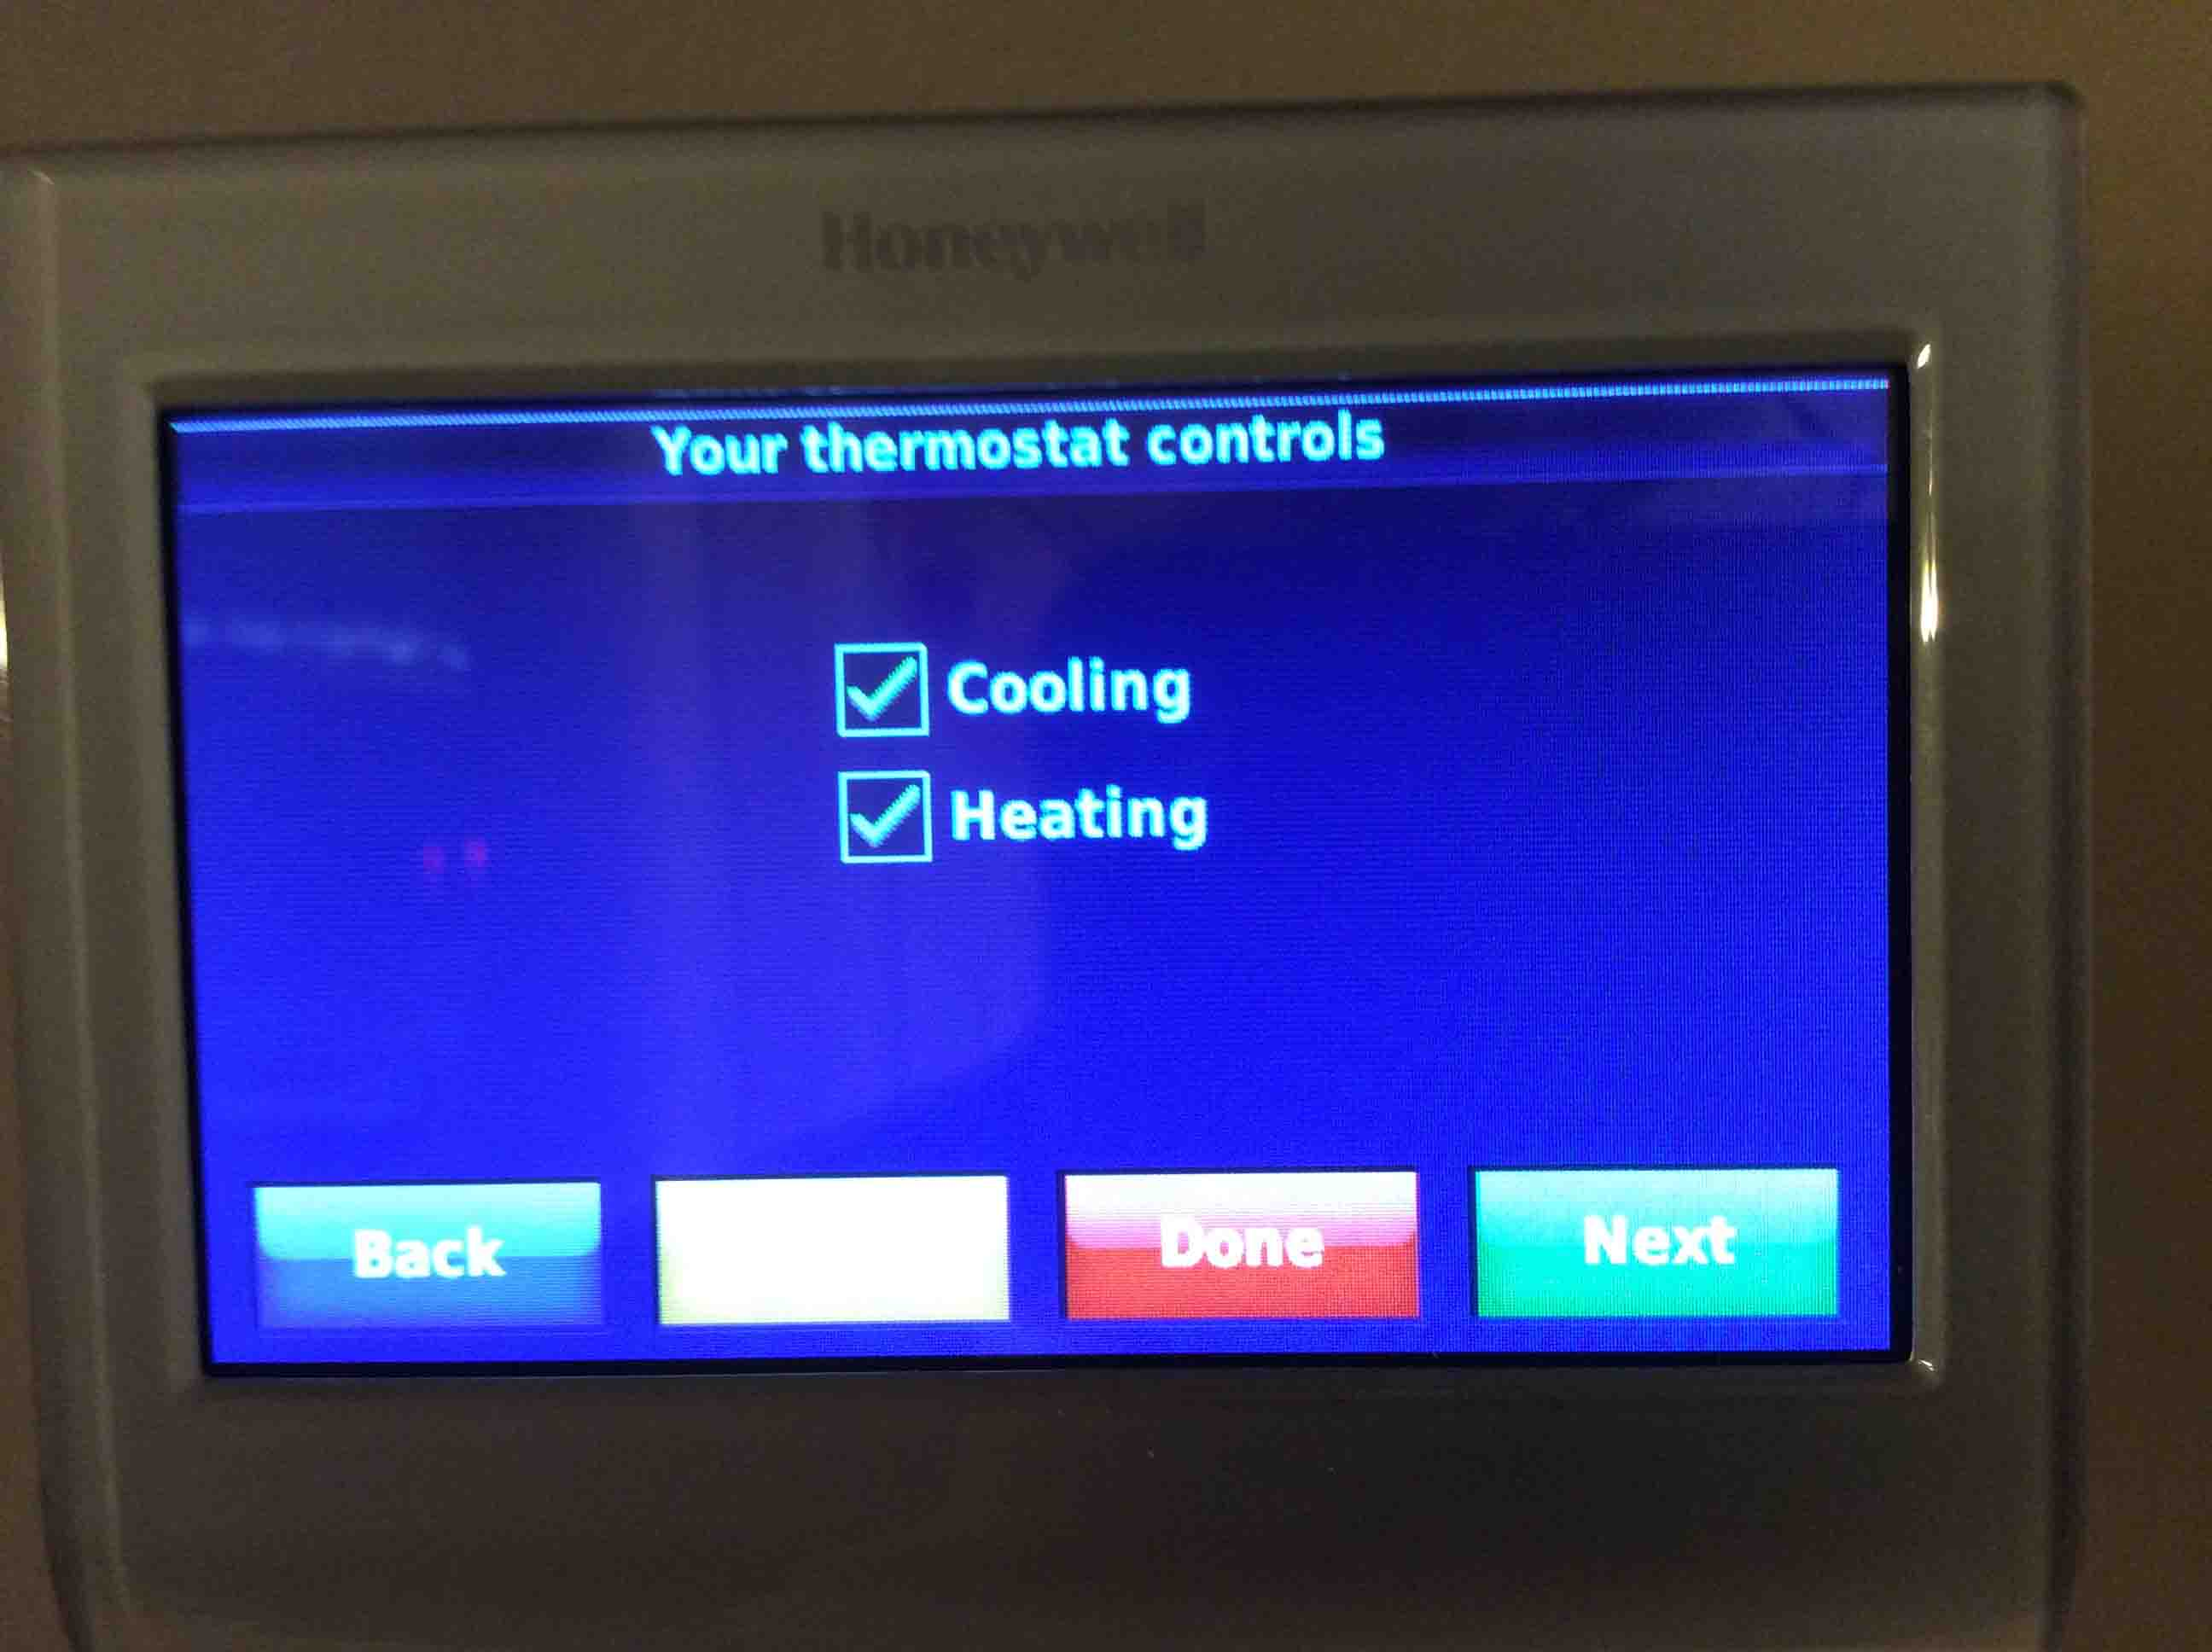 honeywell rth9580wf factory reset mvc application architecture diagram thermostat pictures gallery tom 39s tek stop